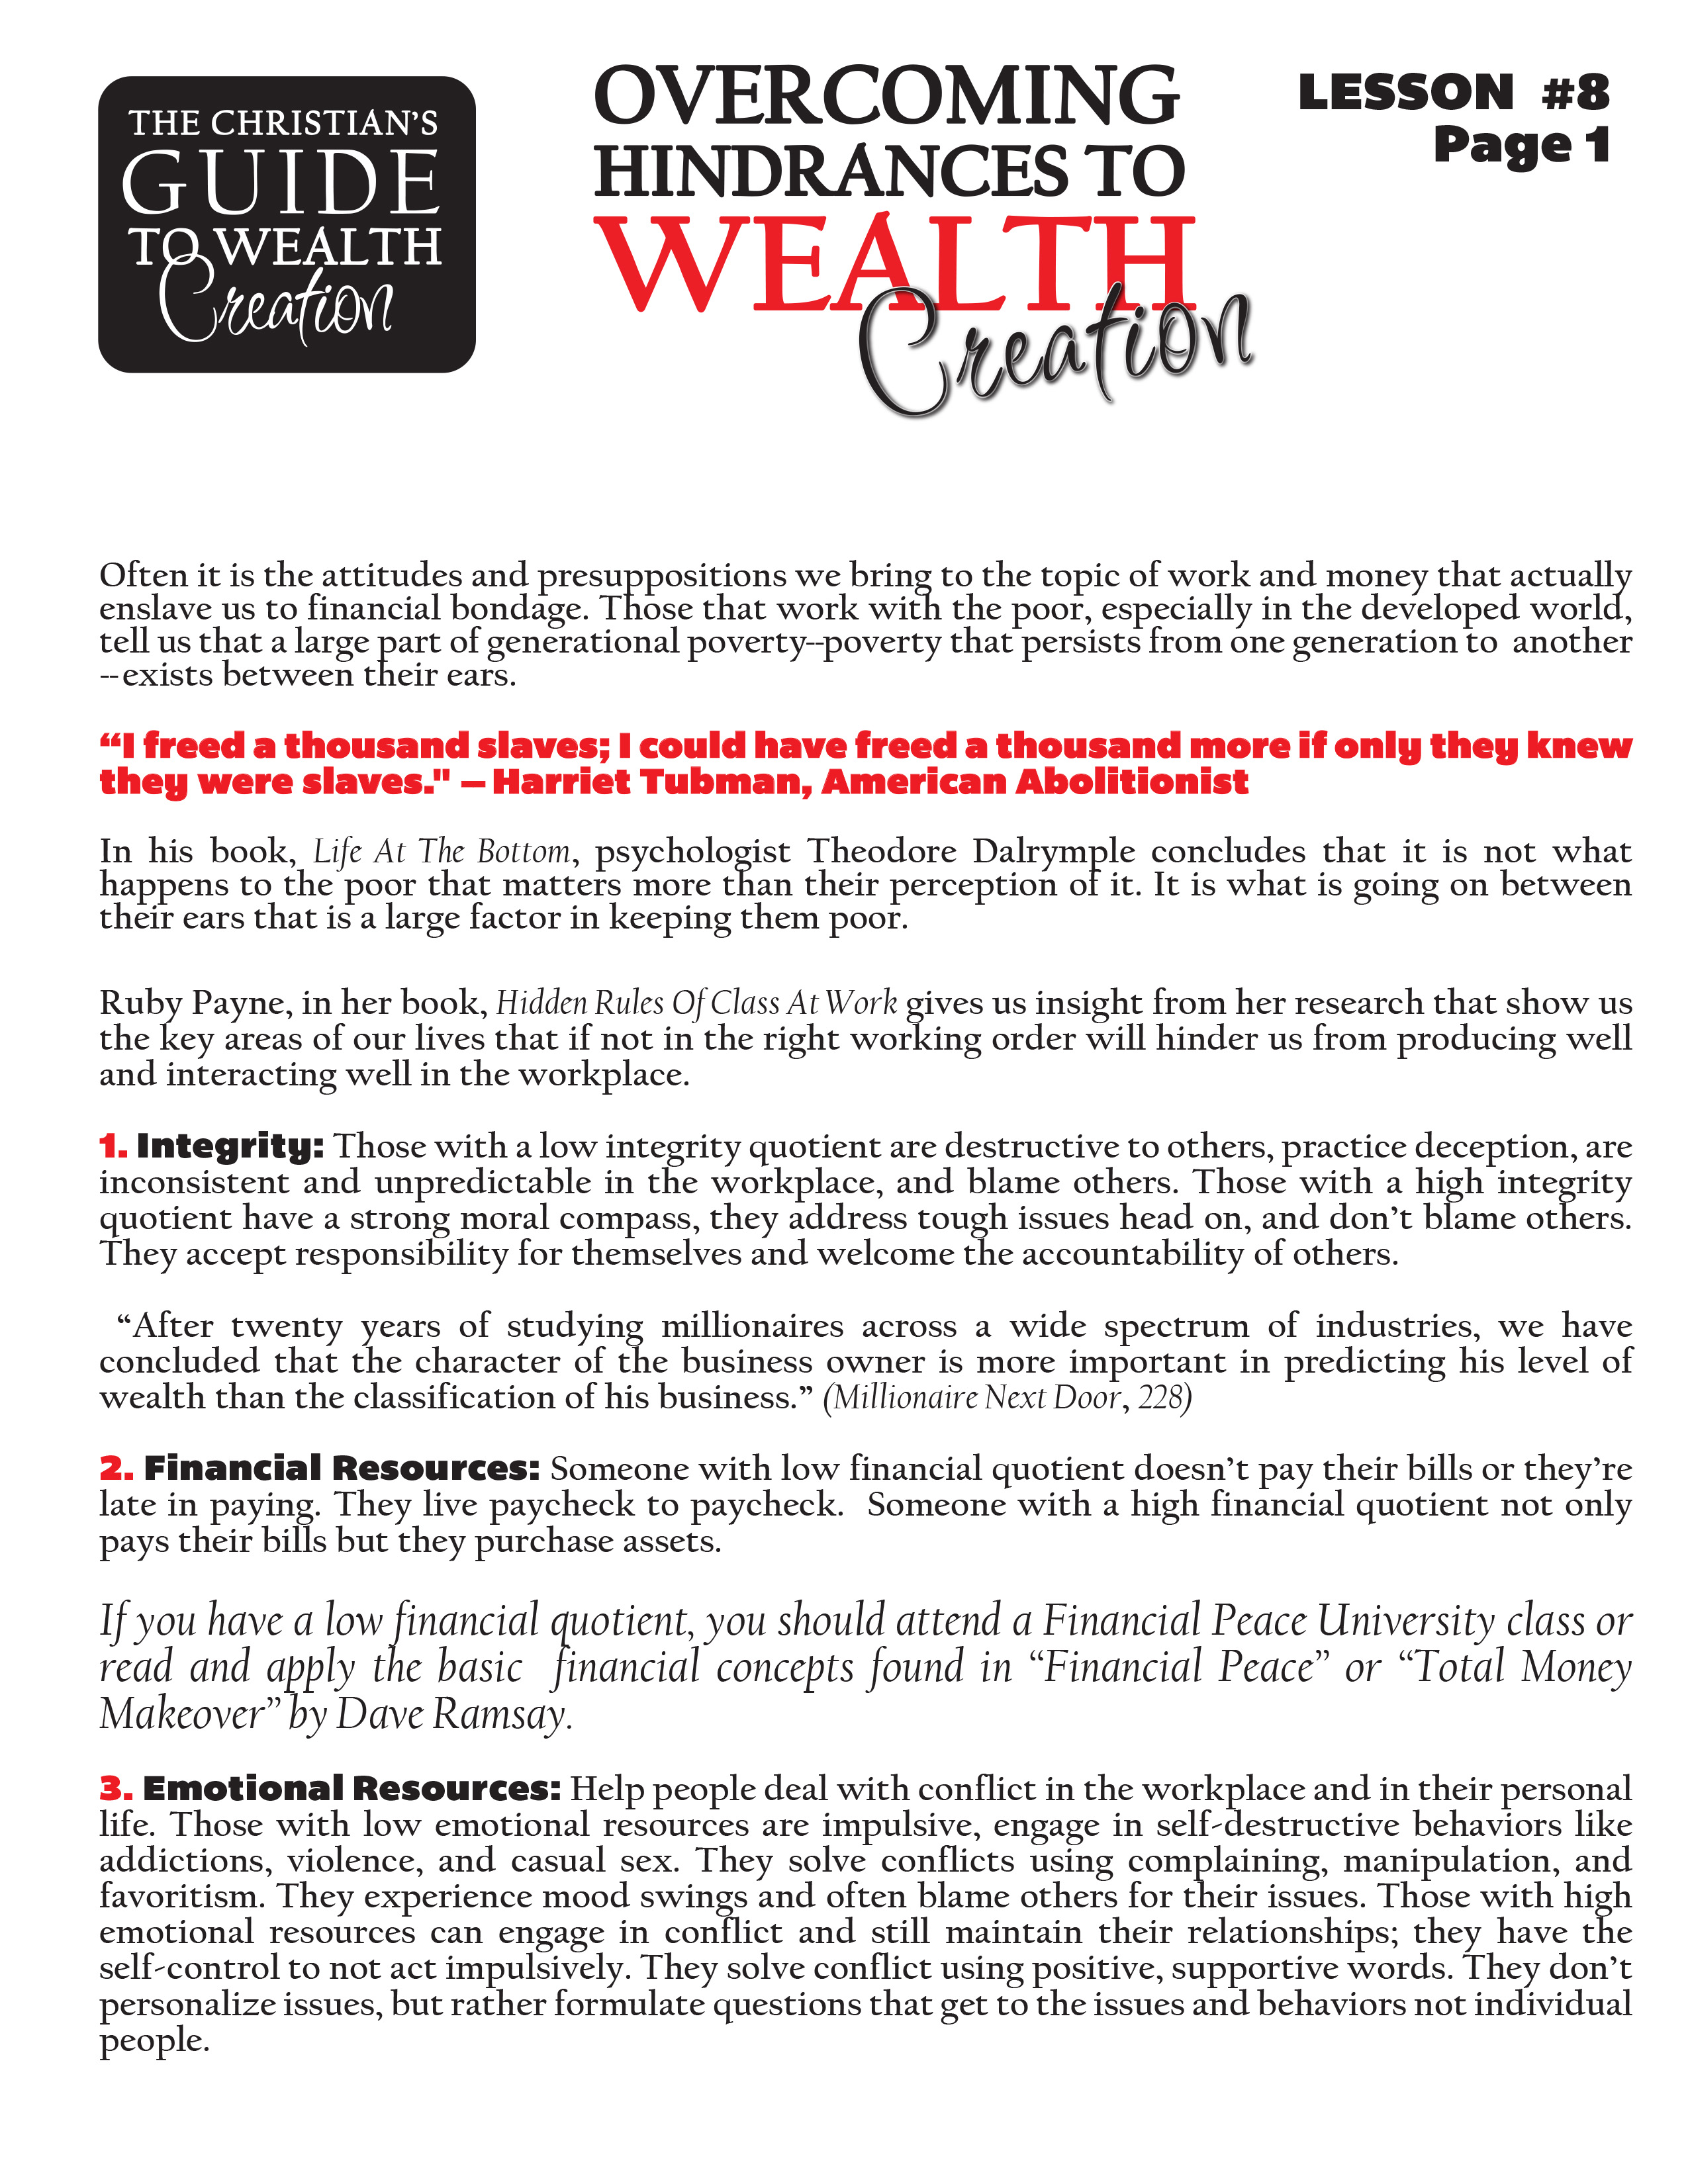 Lesson 8 Overcoming Hindrances to Wealth Creation - page 1.jpg